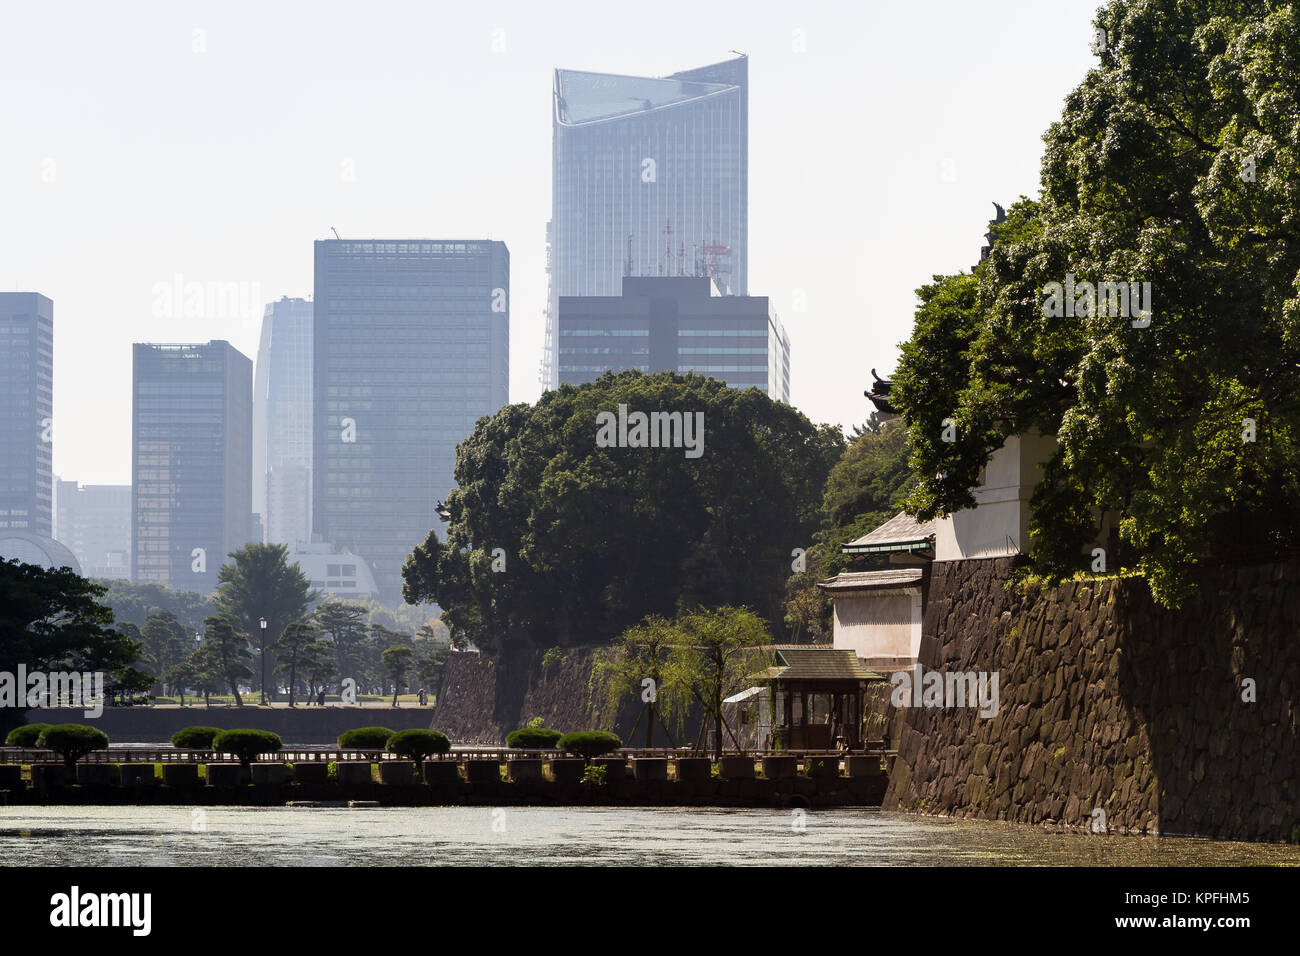 Tokyo skyscrapers seen behind the Imperial Palace walls and Palace moat in central Tokyo, Japan. Friday October - Stock Image